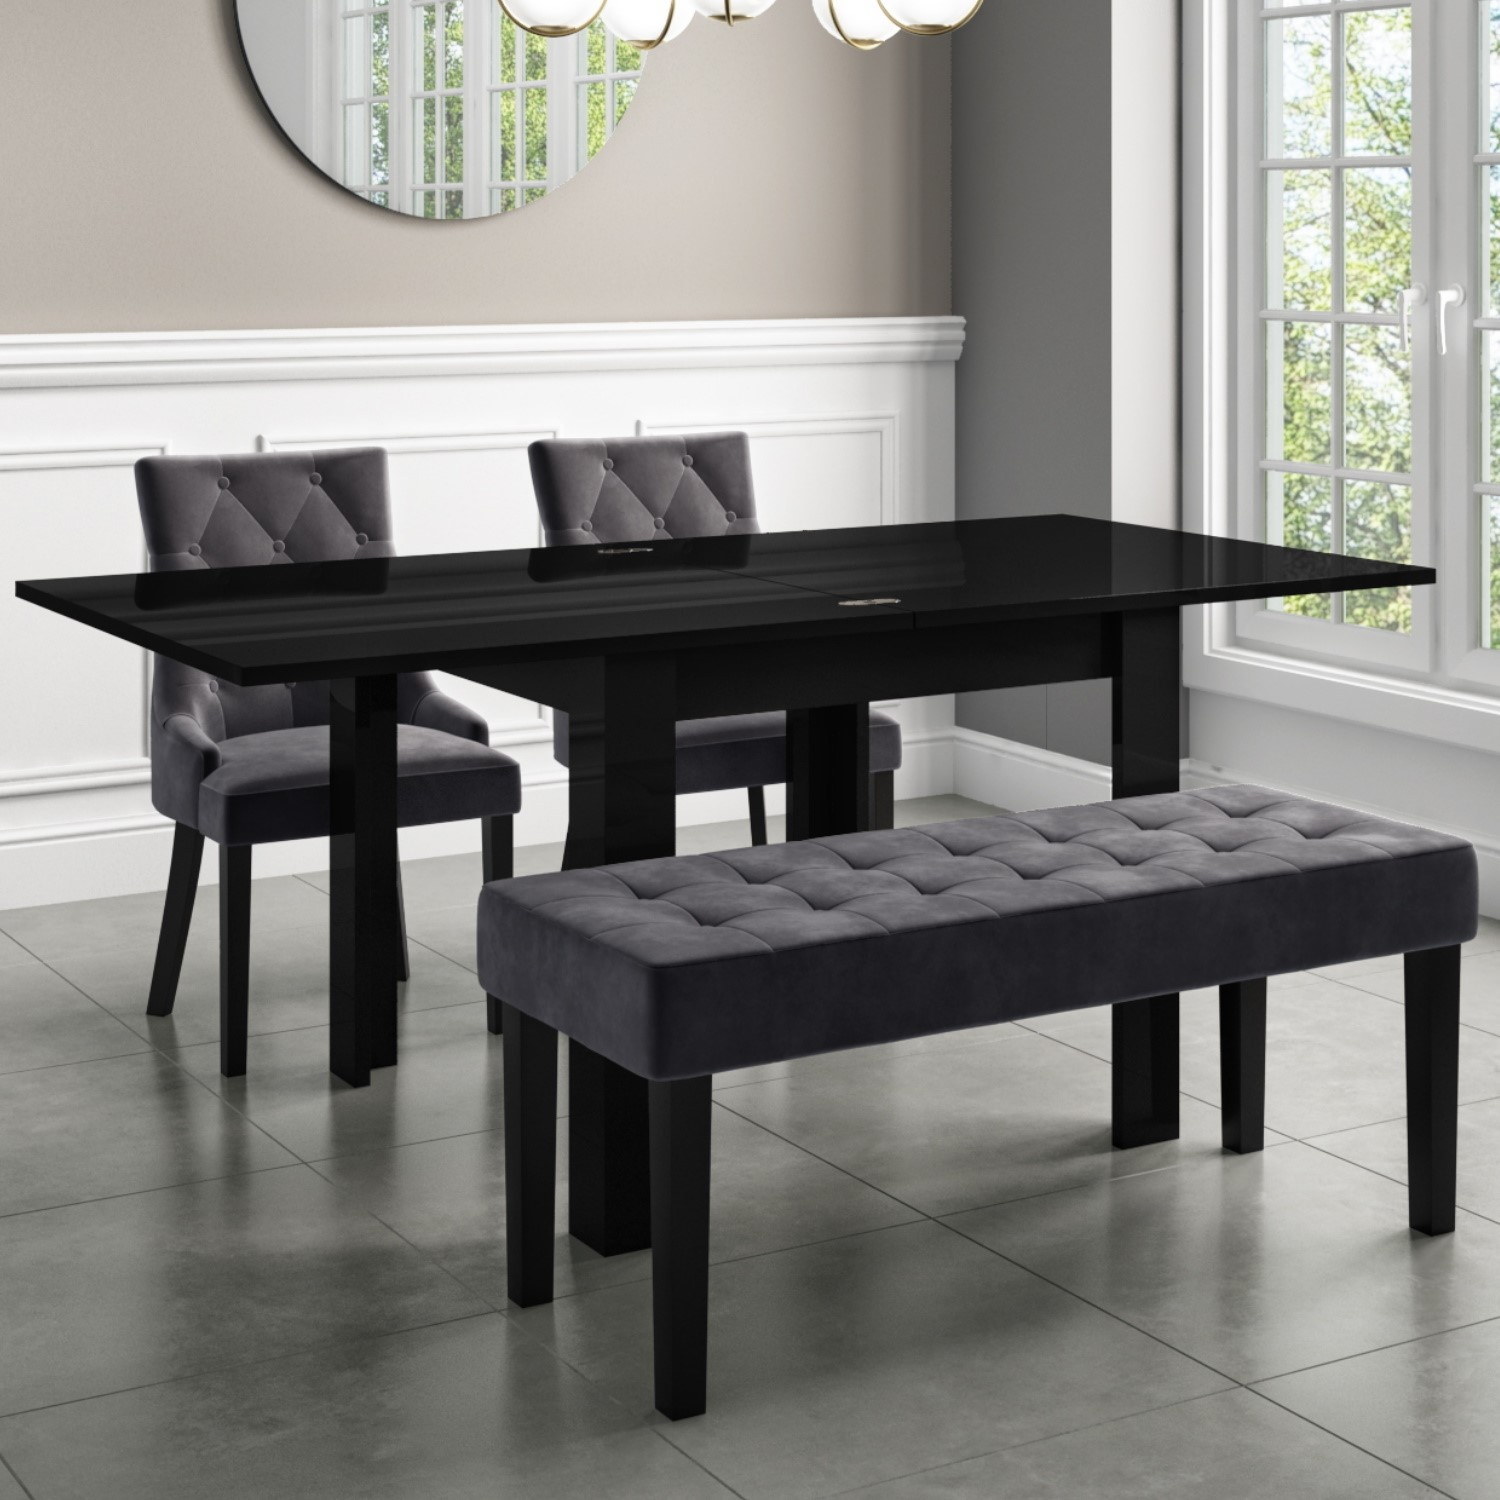 Flip Top Dining Table In Black High Gloss With 2 Grey Velvet Chairs 1 Bench Vivienne Kaylee Buyitdirect Ie